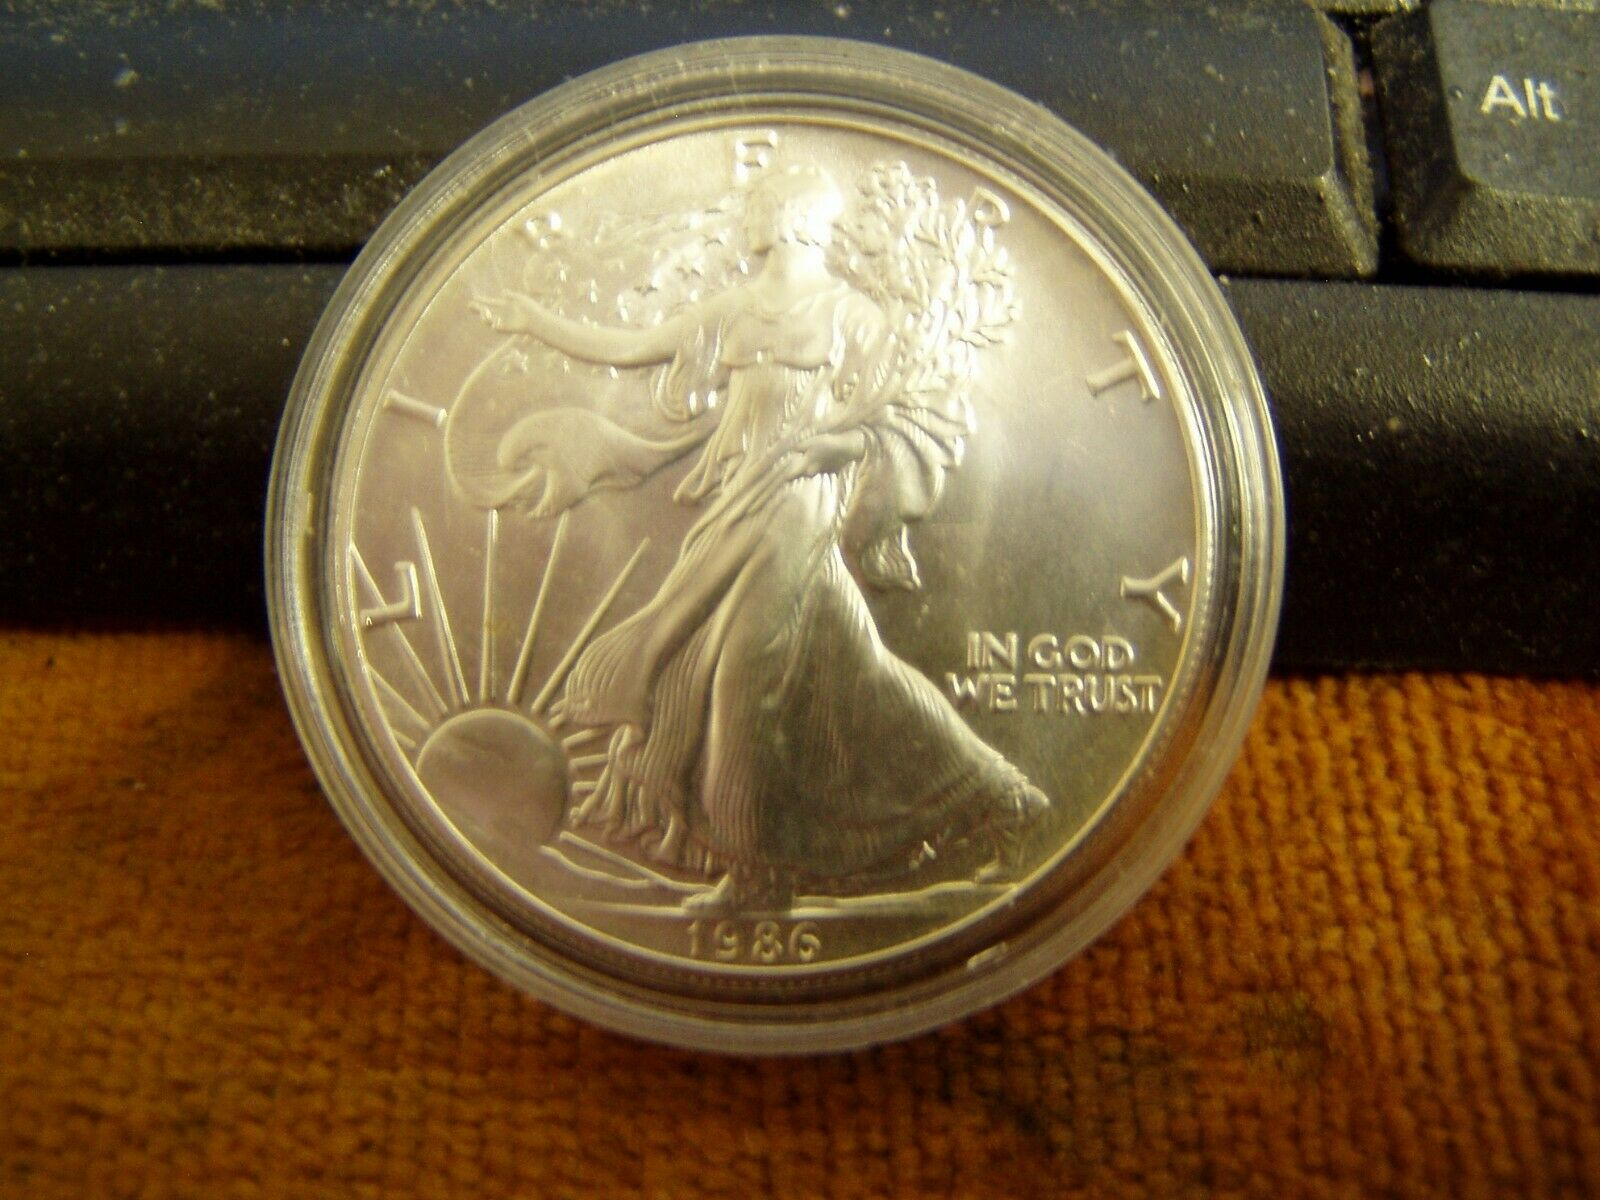 1986 American Silver Eagle,1oz .999 Silver,BU Condition - $45.00